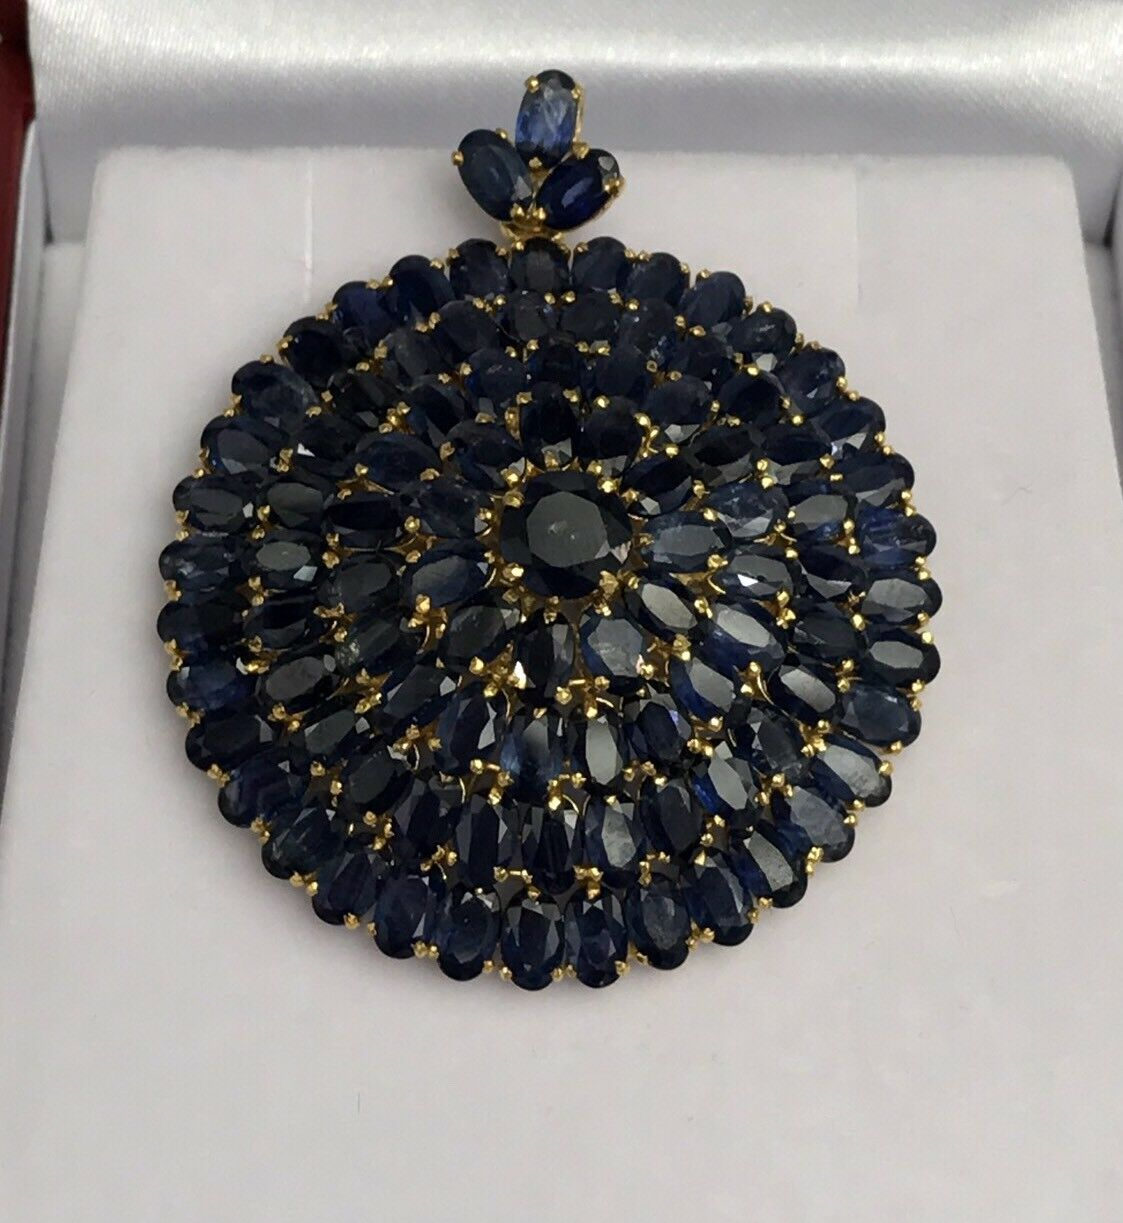 14k Solid Yellow gold Cluster Round Big Pendant, Natural Sapphire 22TCW.